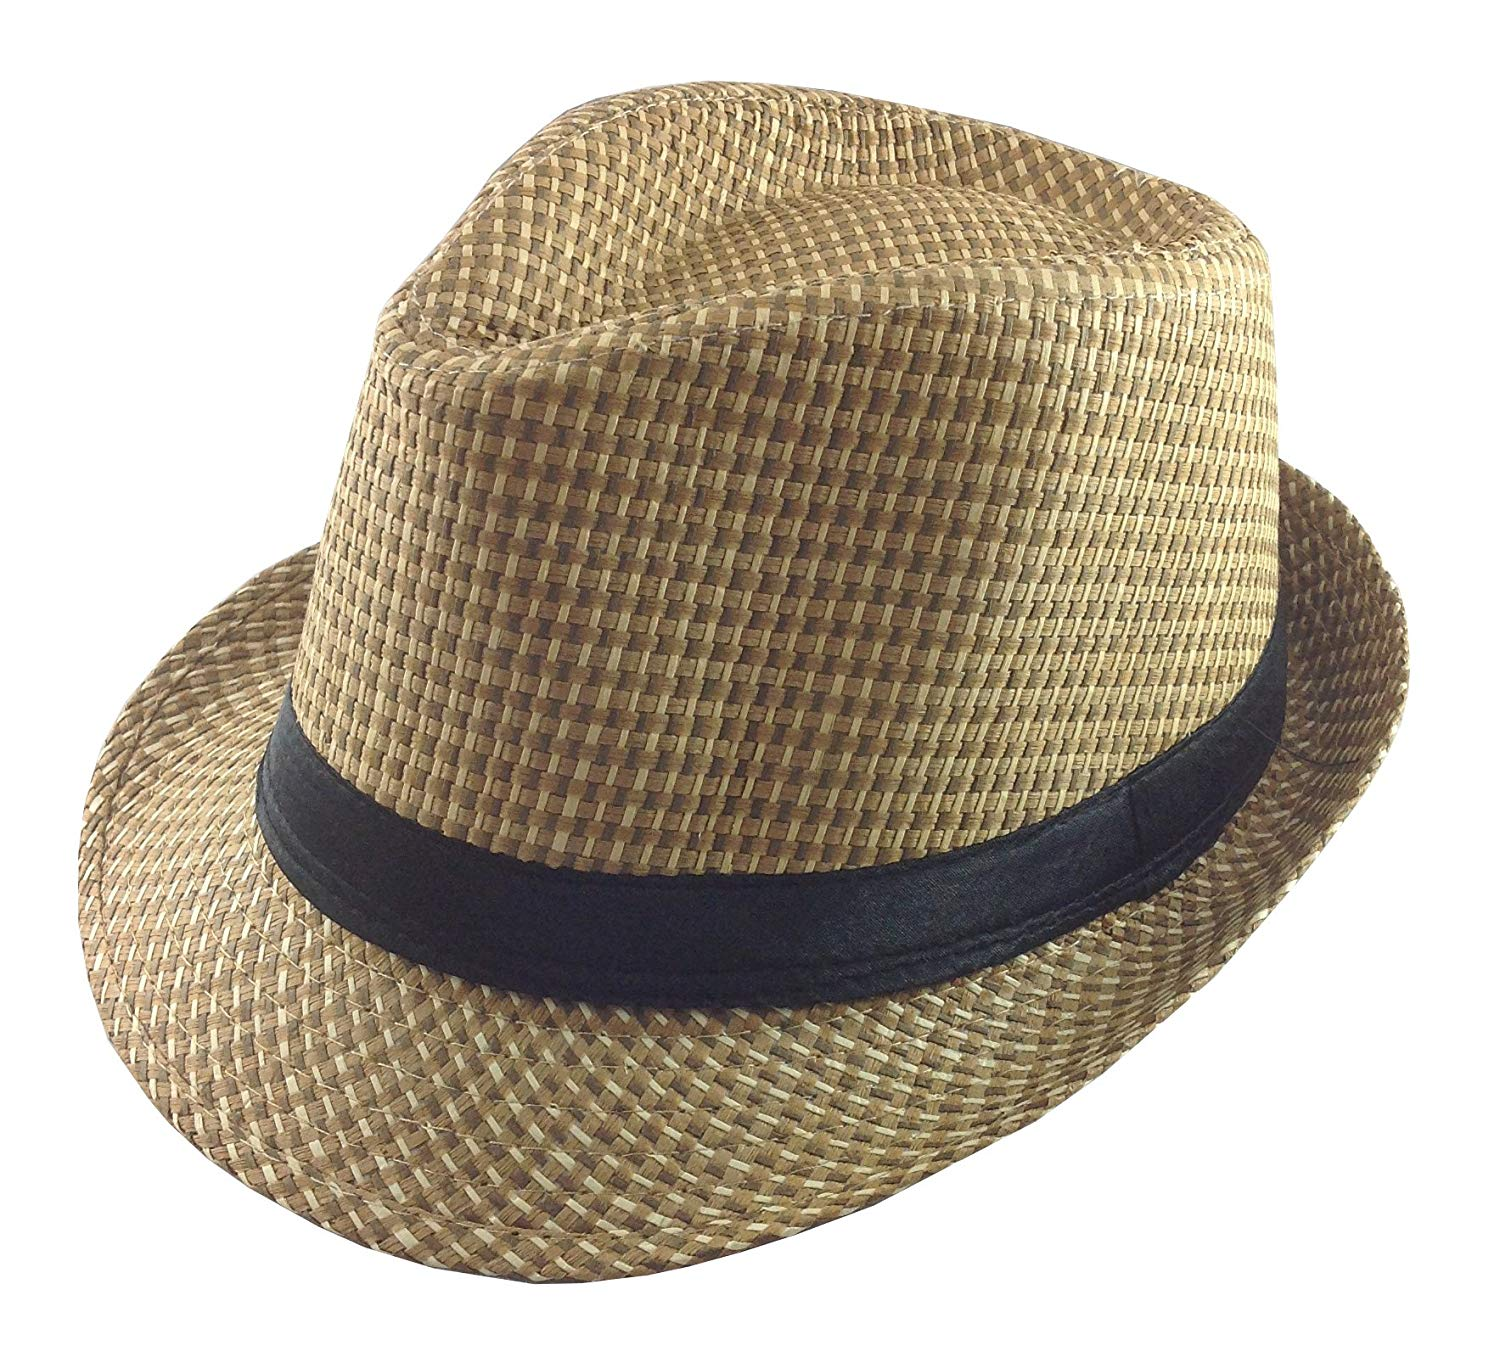 6f3144d1def Get Quotations · Natural Woven Straw Fedora Hat with Black Band